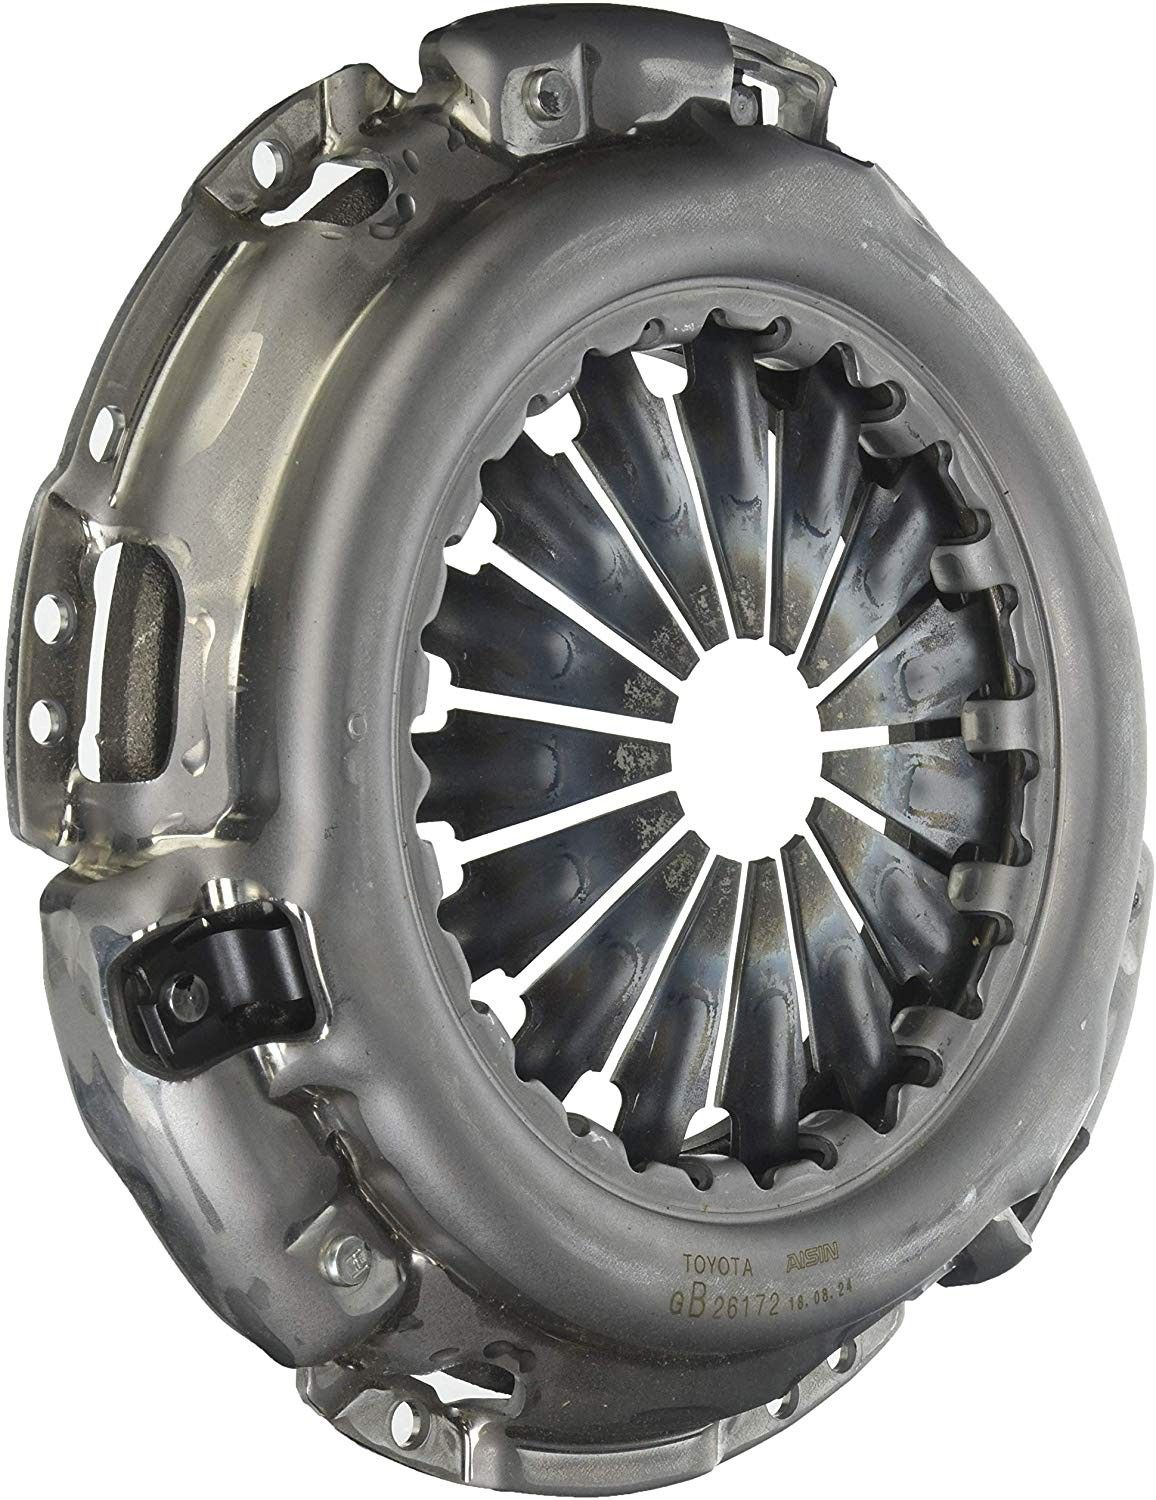 Luk Clutch Pressure Plate For TATA 3515 GB50/GB60 without bearing 352 - 1420233200